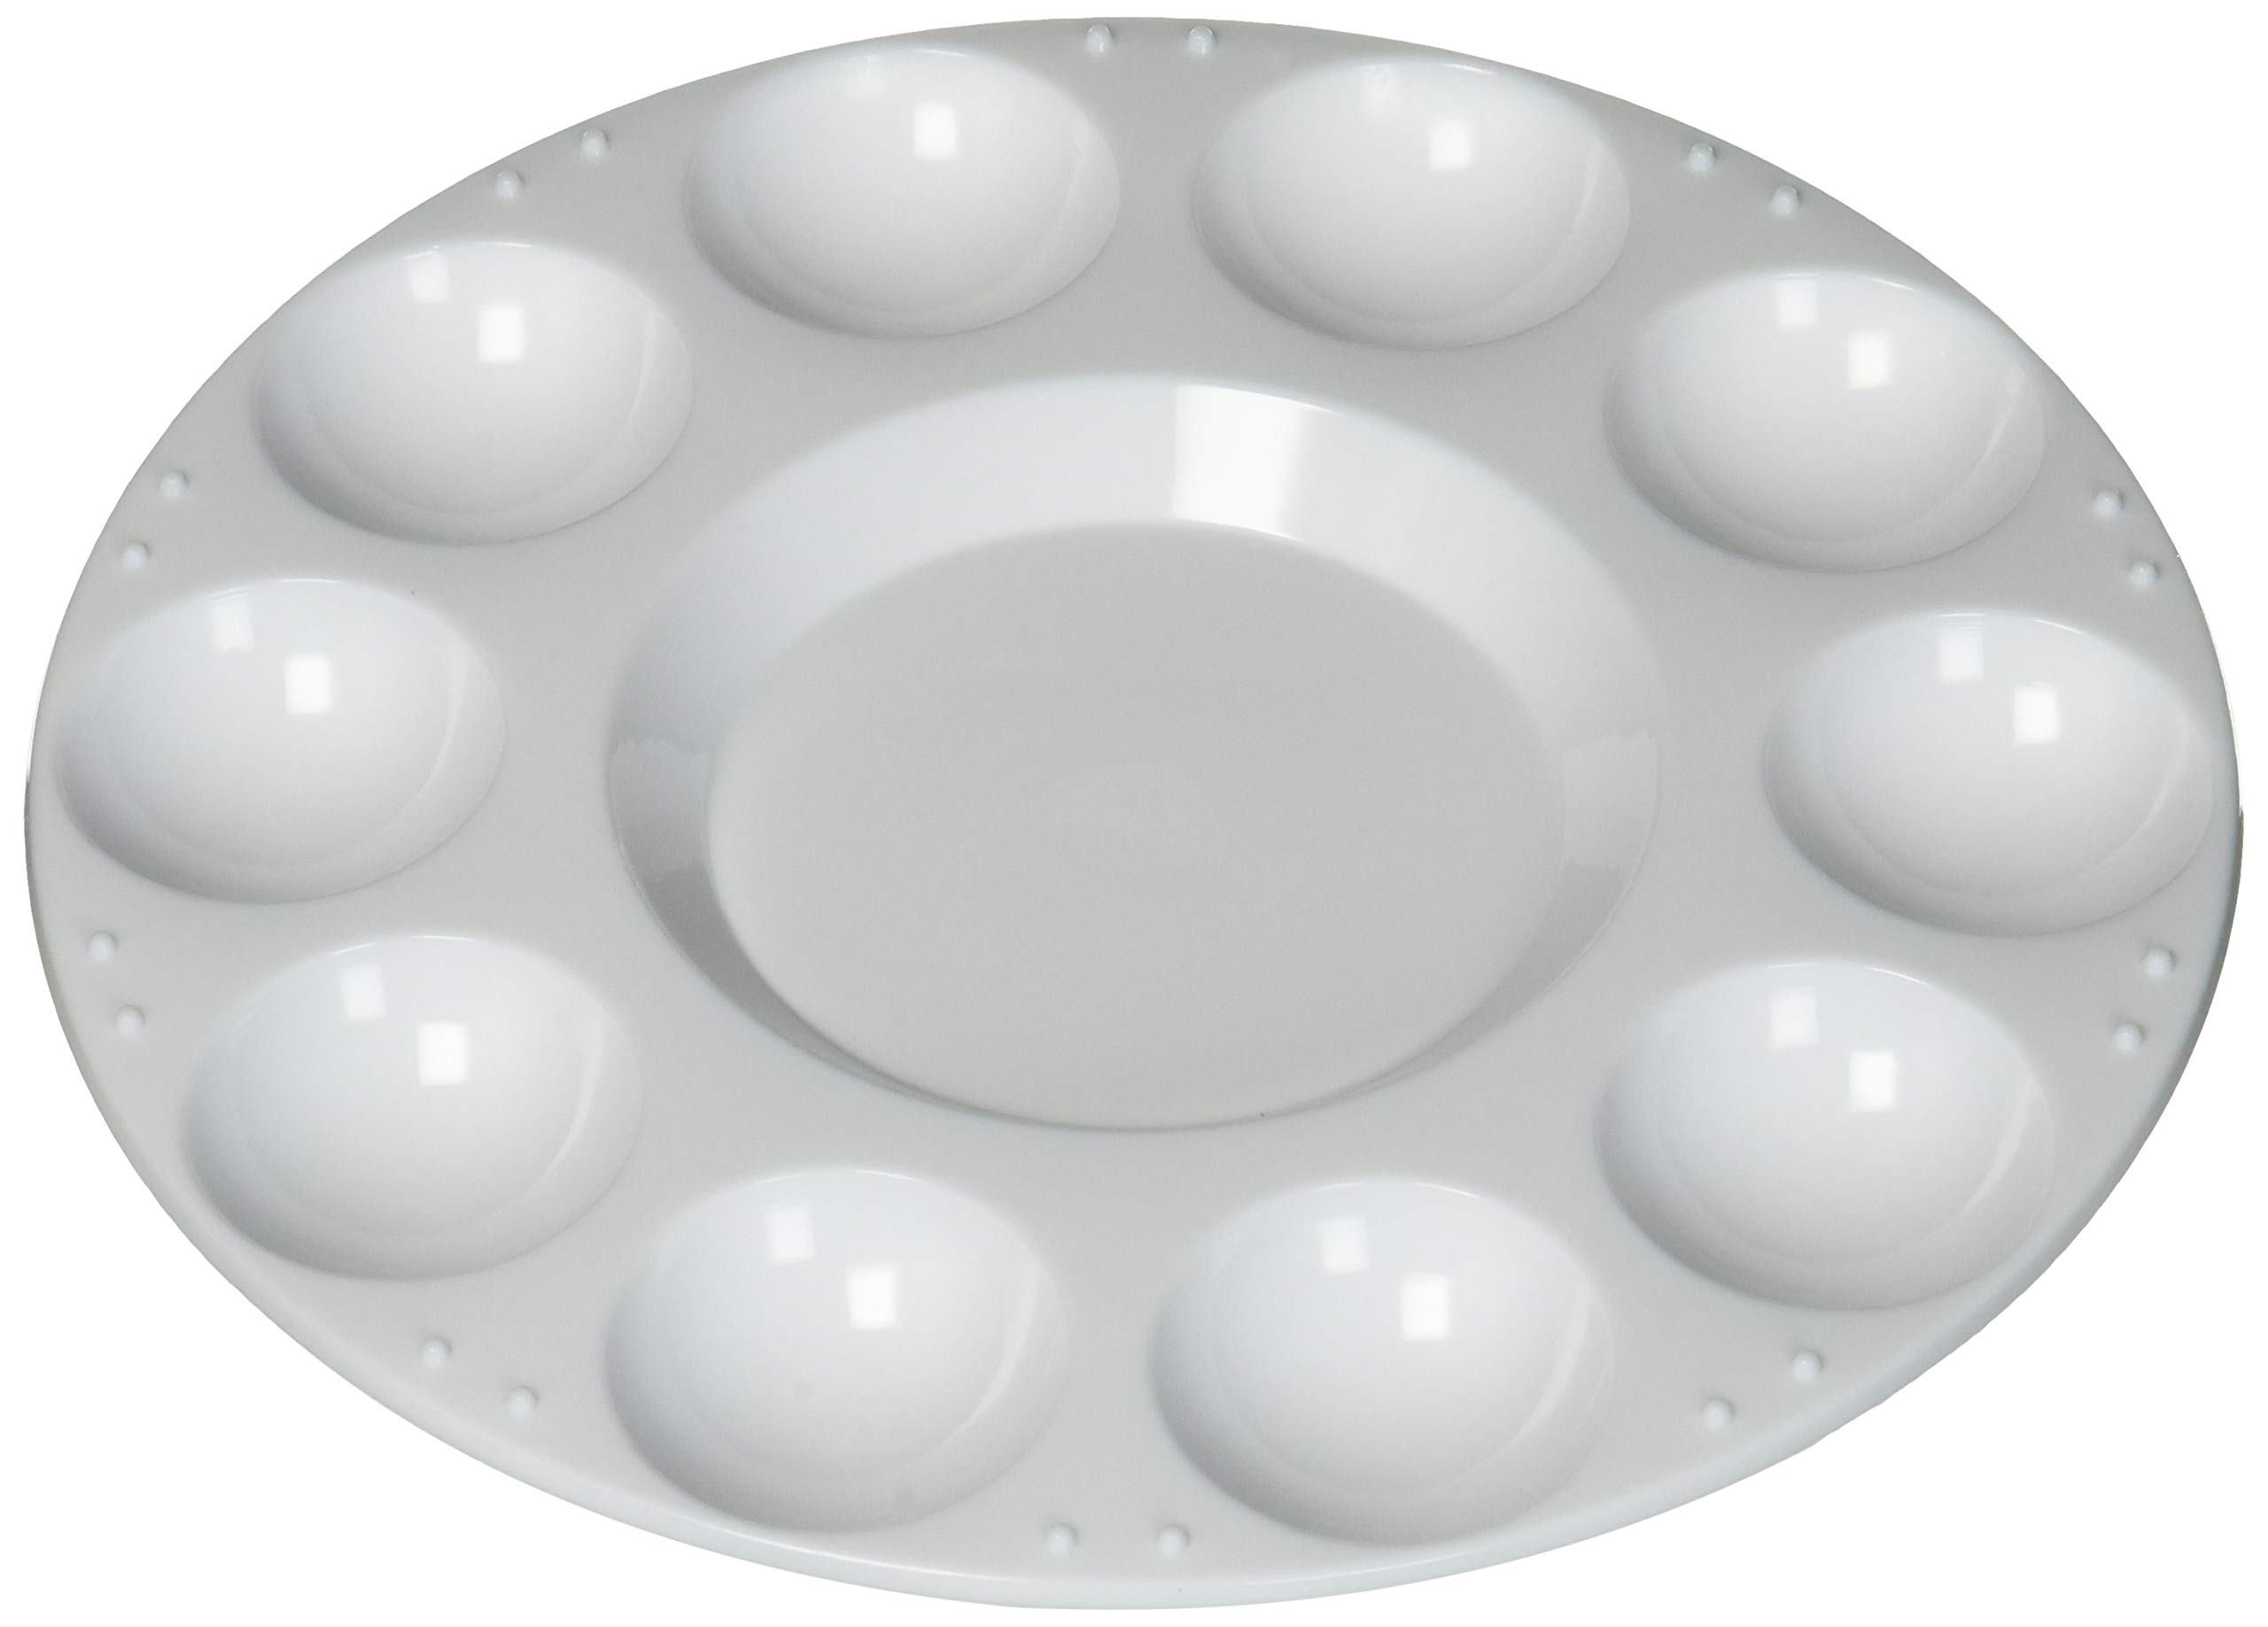 Jack Richeson 400220-12 Richeson Round 10 Well Trays with Lids, 12 Pack by Jack Richeson